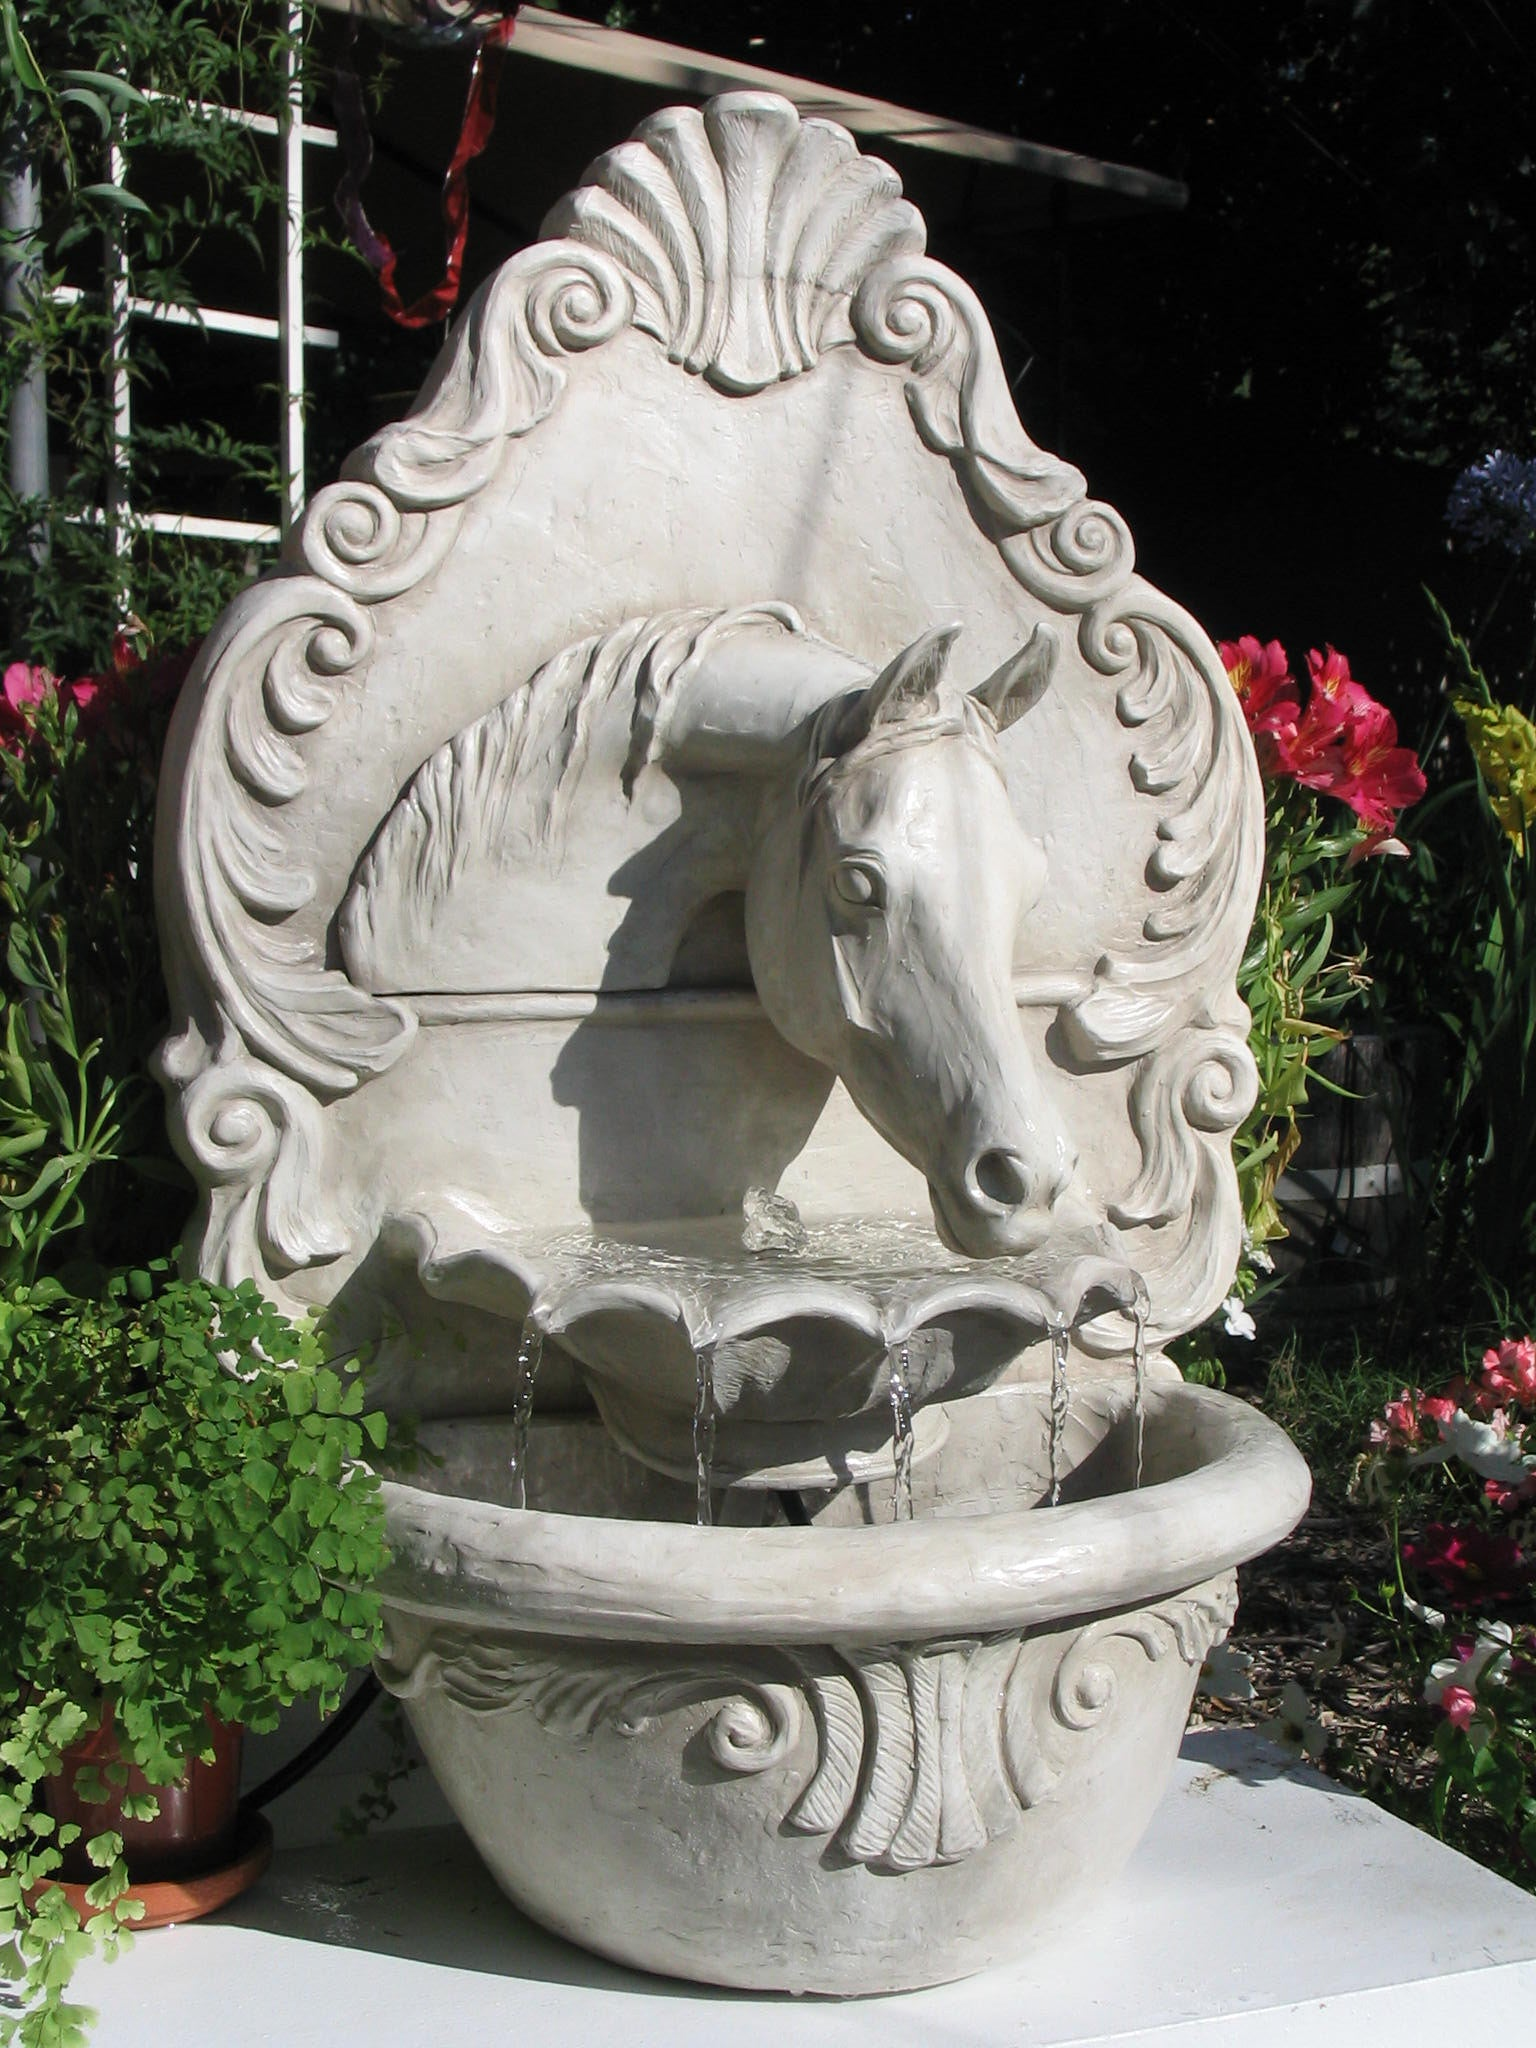 Arabian Horse Fountain (Lipizzan White) - Patricia Borum